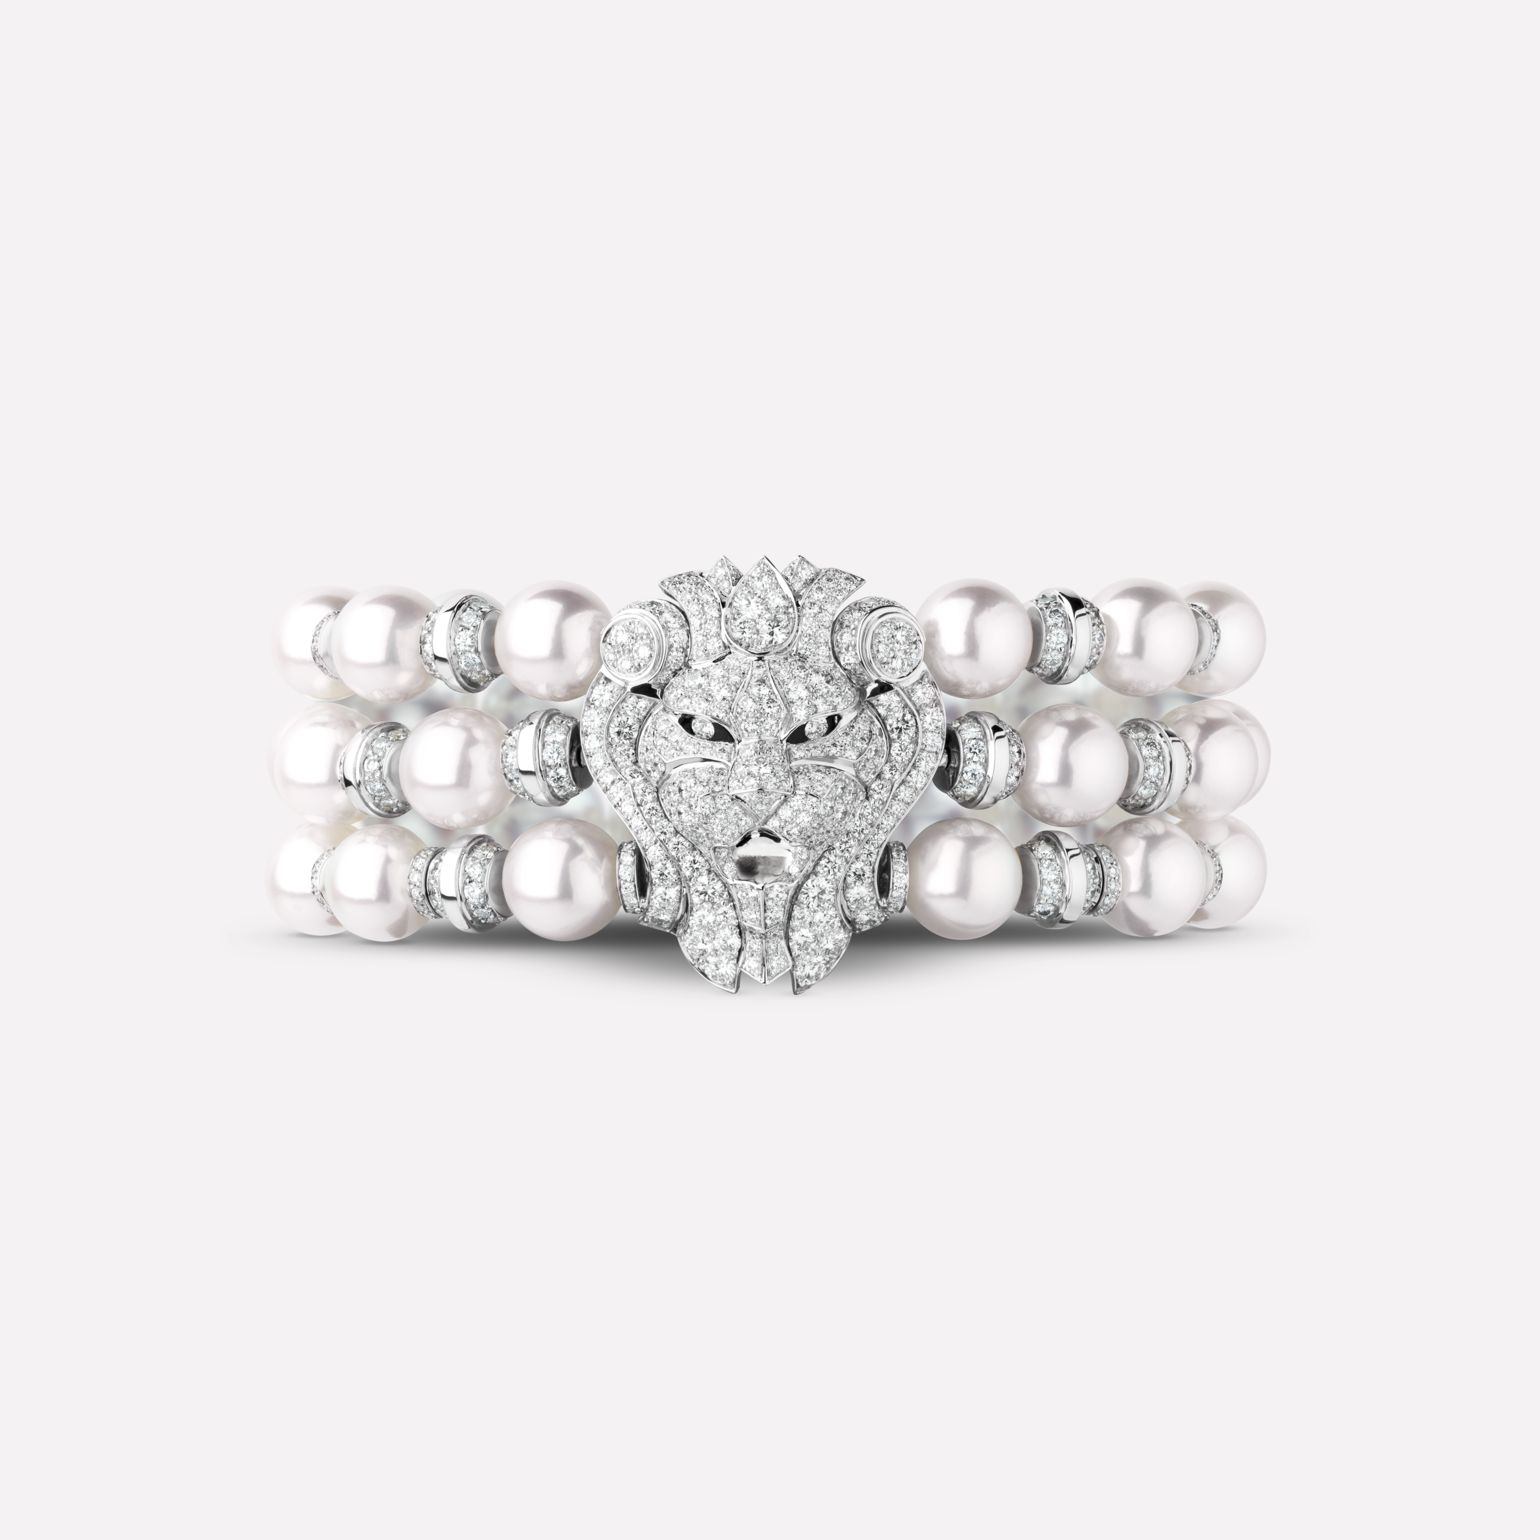 Sous le Signe du Lion bracelet Lion three-row bracelet, in 18K white gold, diamonds and one cultured pearl